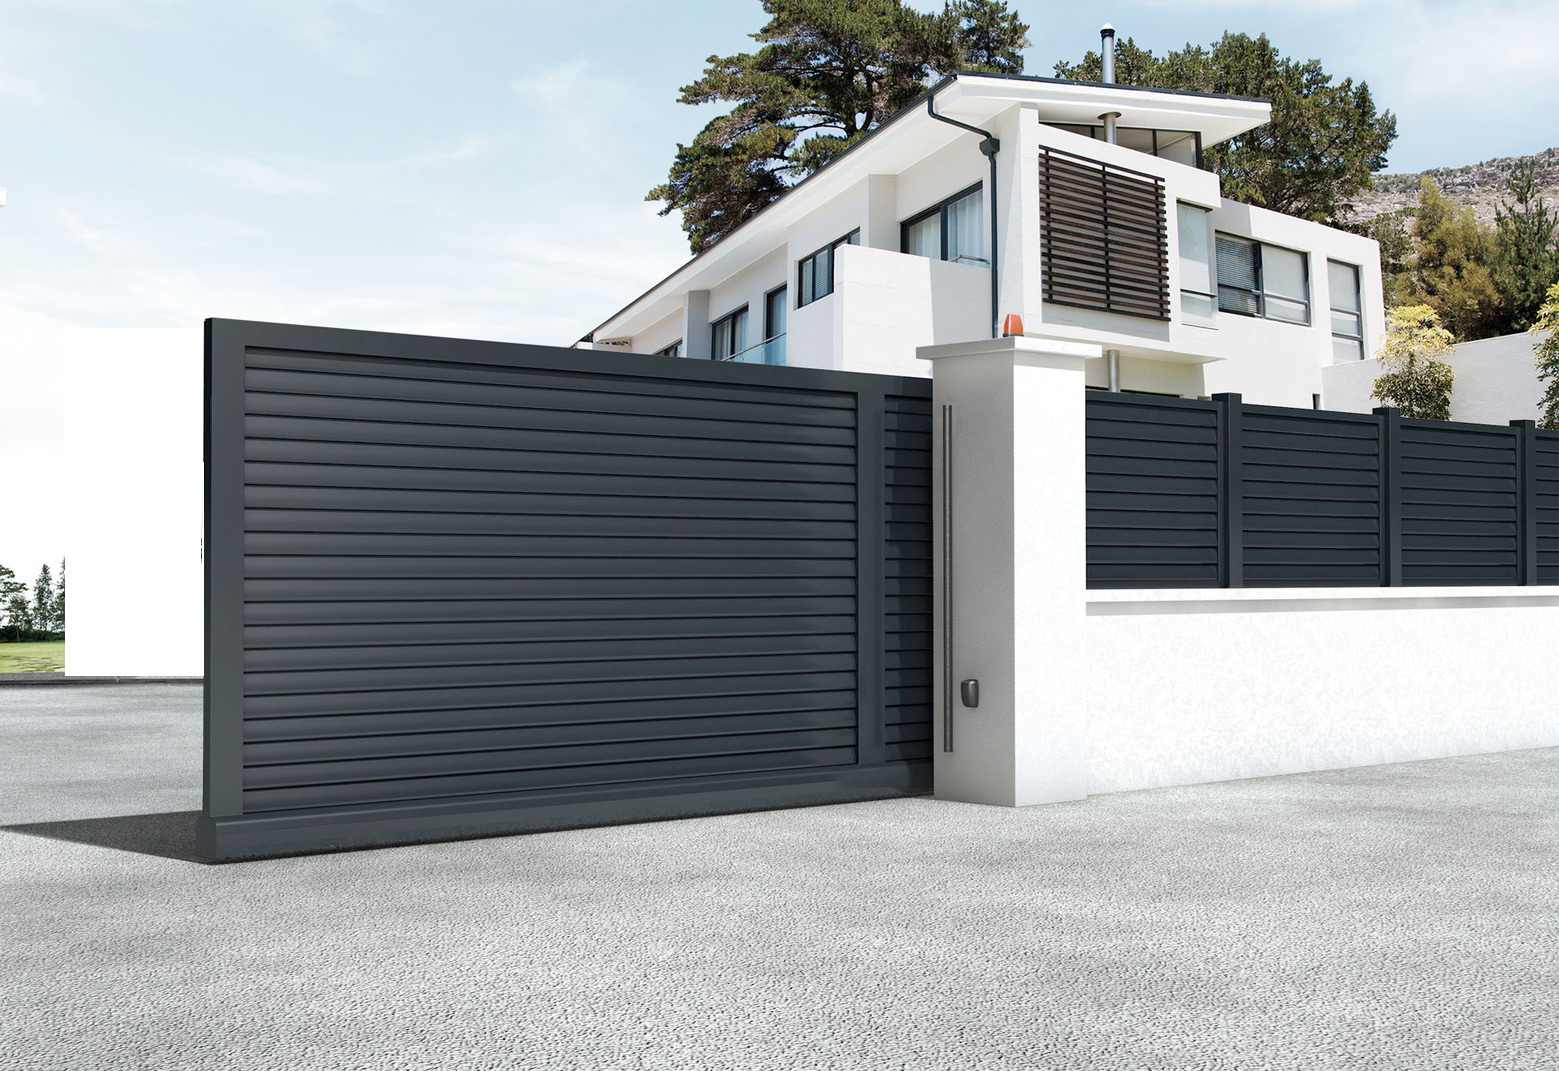 Top tips for your new driveway gate